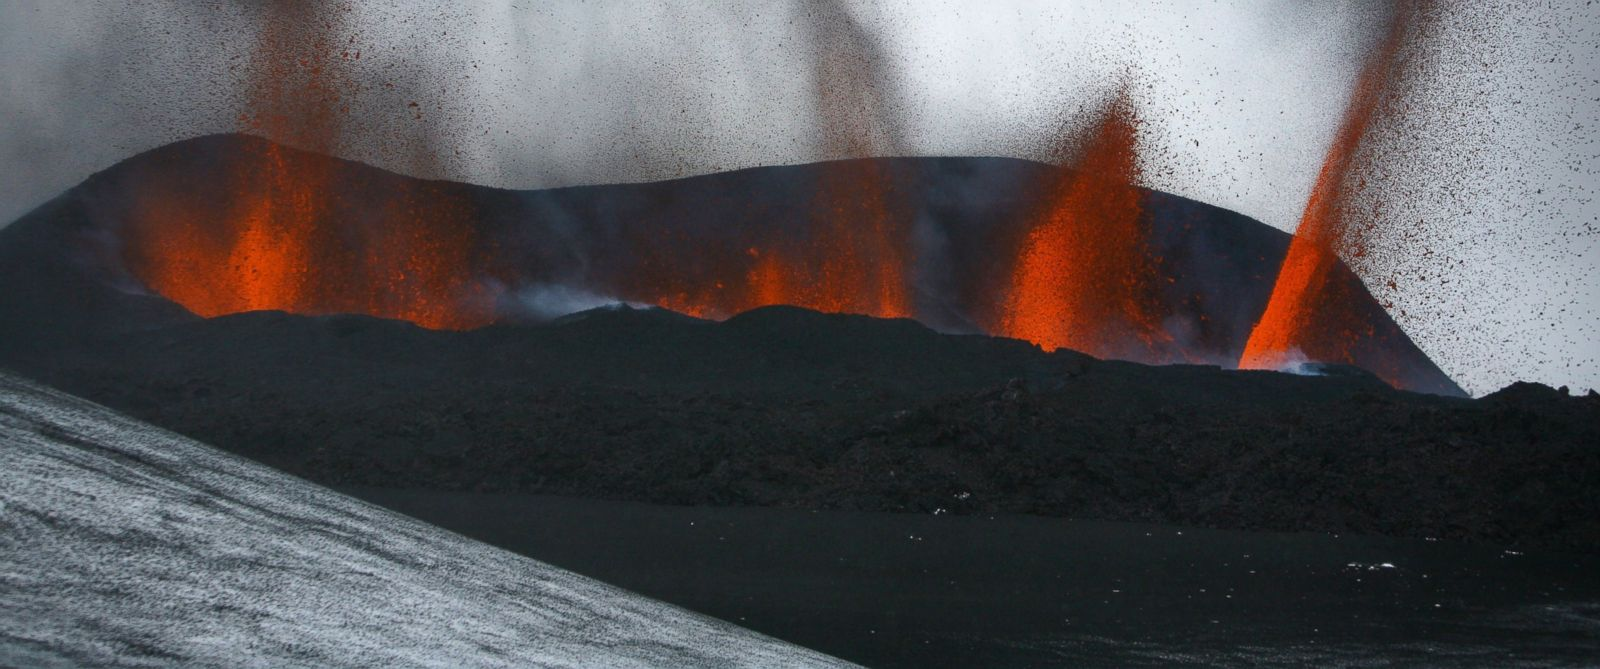 PHOTO: Lava spews out of a mountain in this file photo, March 21, 2010, in Hvolsvollur in the region of the Eyjafjallajokull glacier in Iceland.